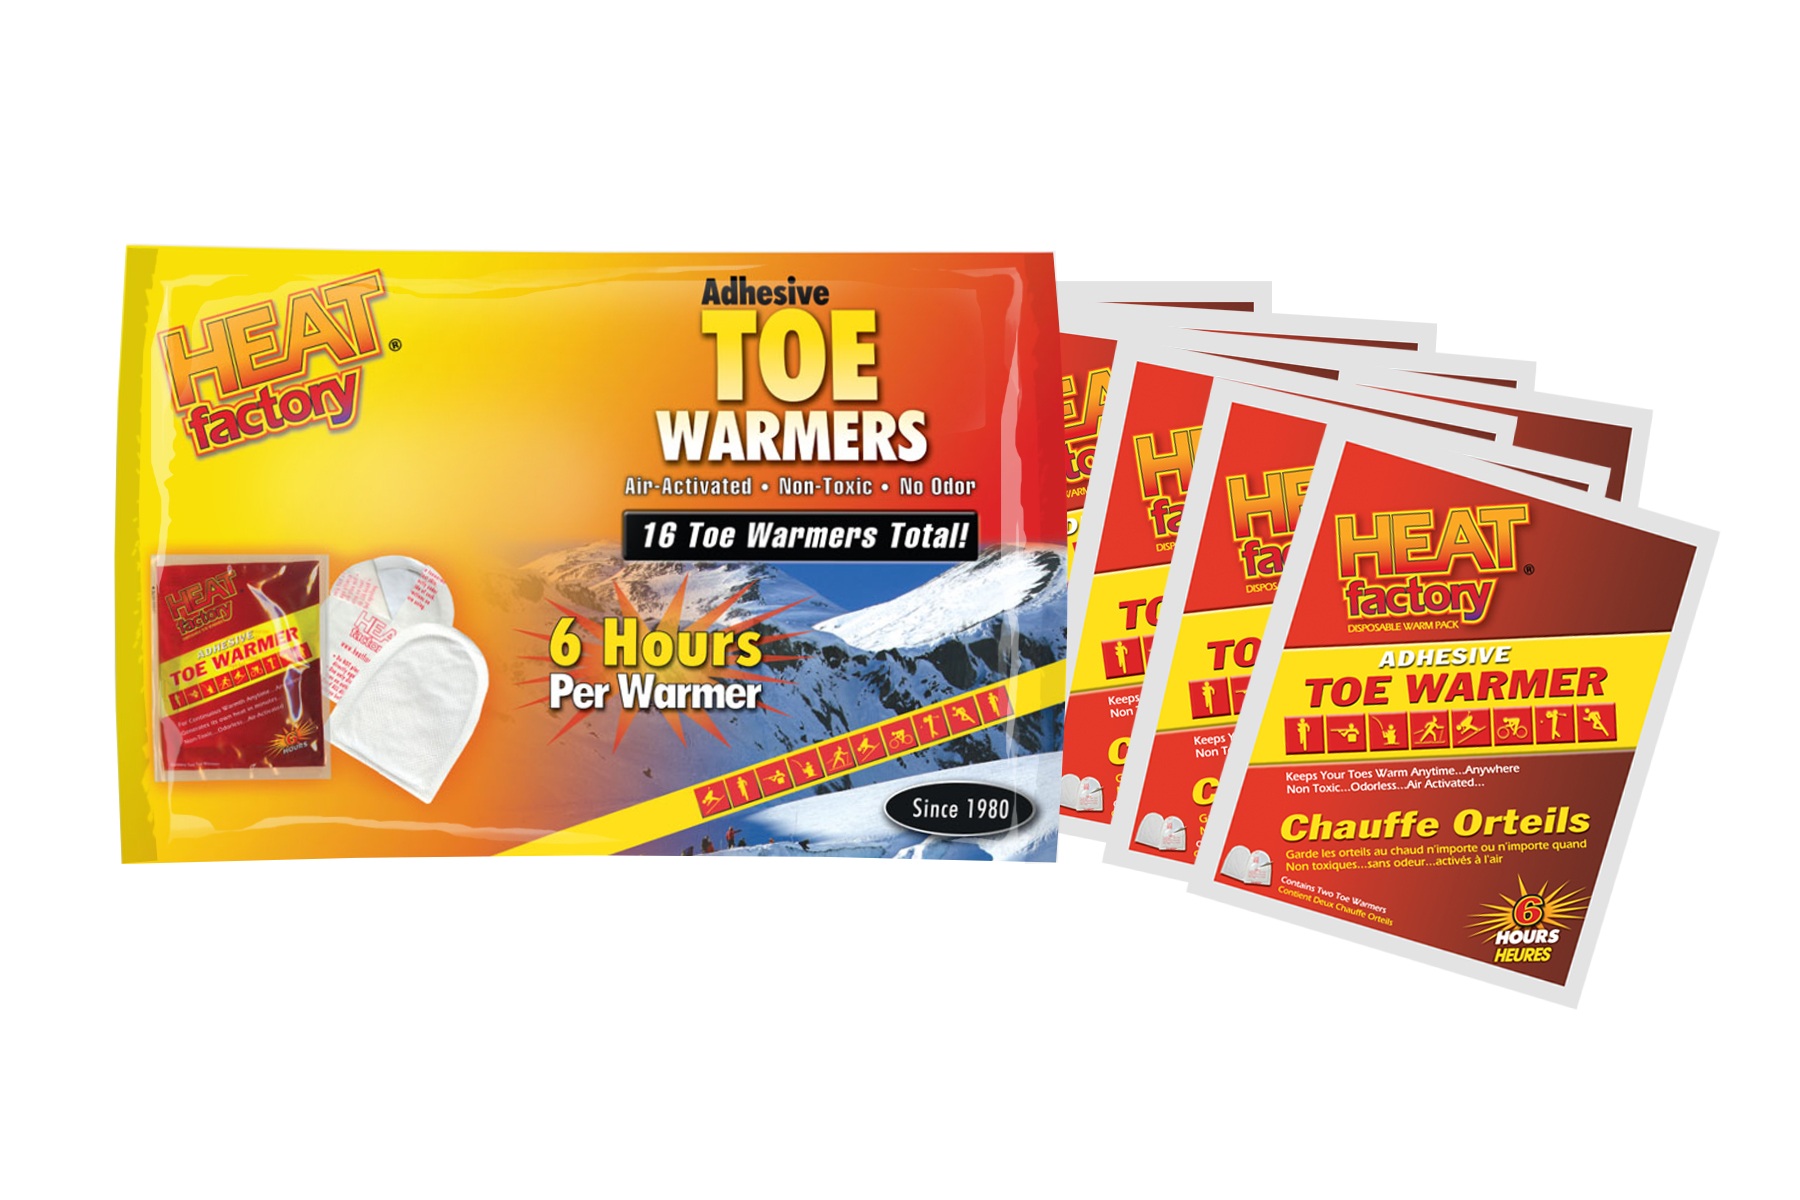 Heat Factory Adhesive Toe Warmer Big Pack